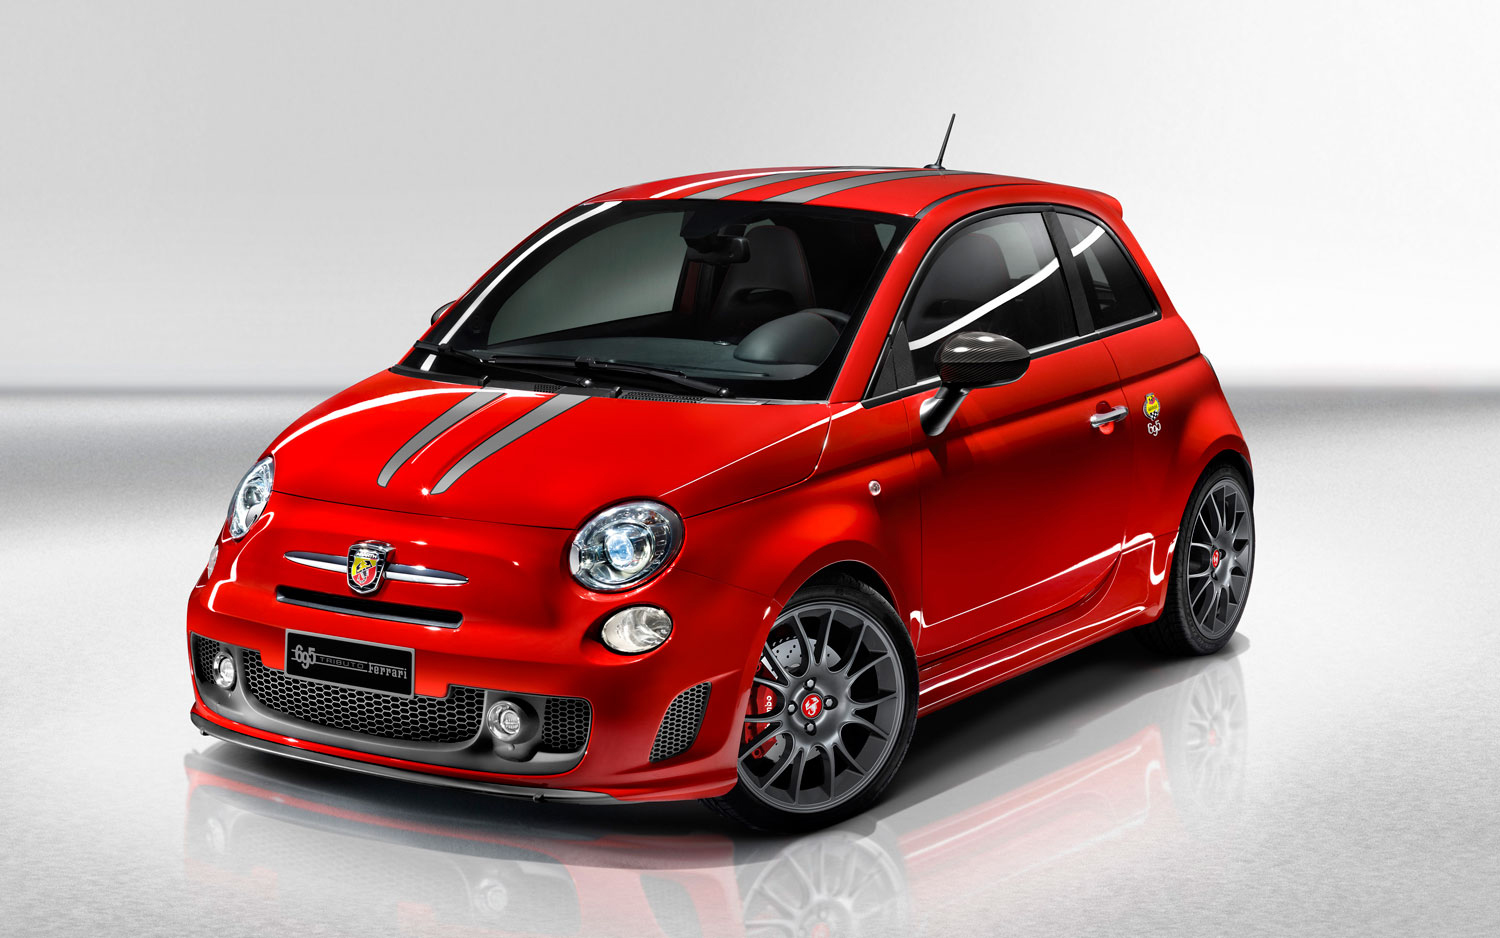 2016 fiat 500 abarth review flawed but feisty boredom buster gearopen. Black Bedroom Furniture Sets. Home Design Ideas